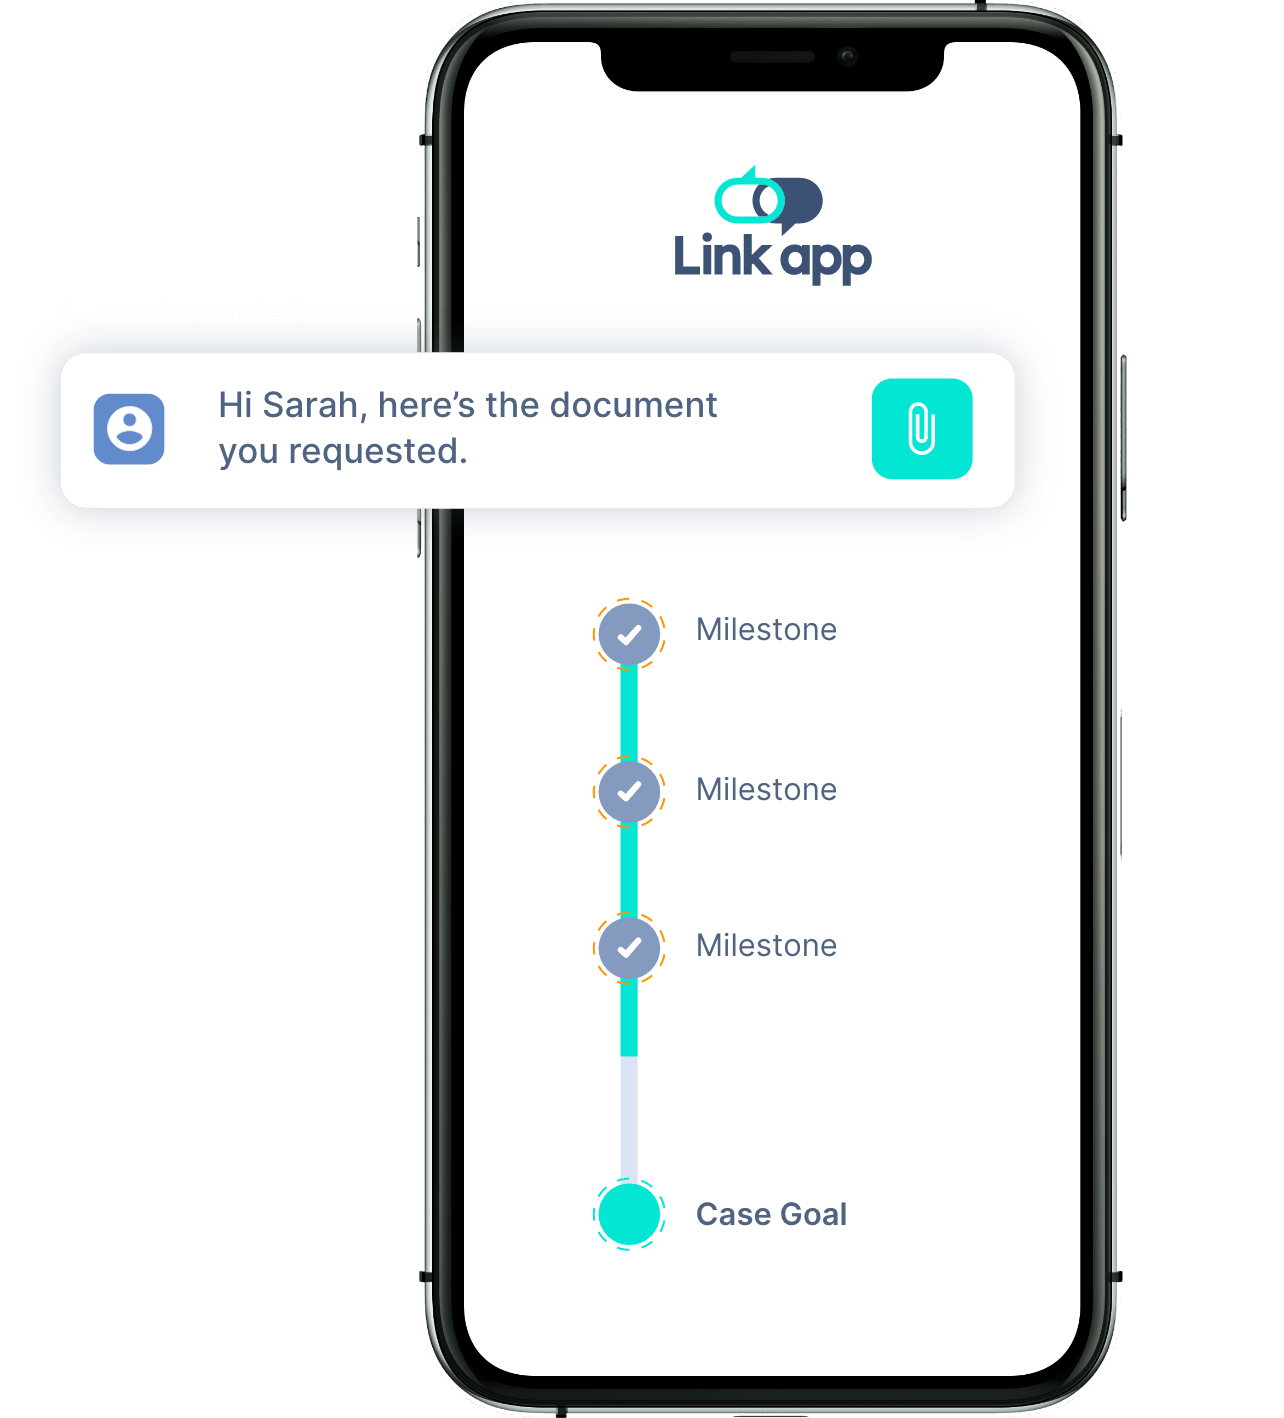 The Link App phone image